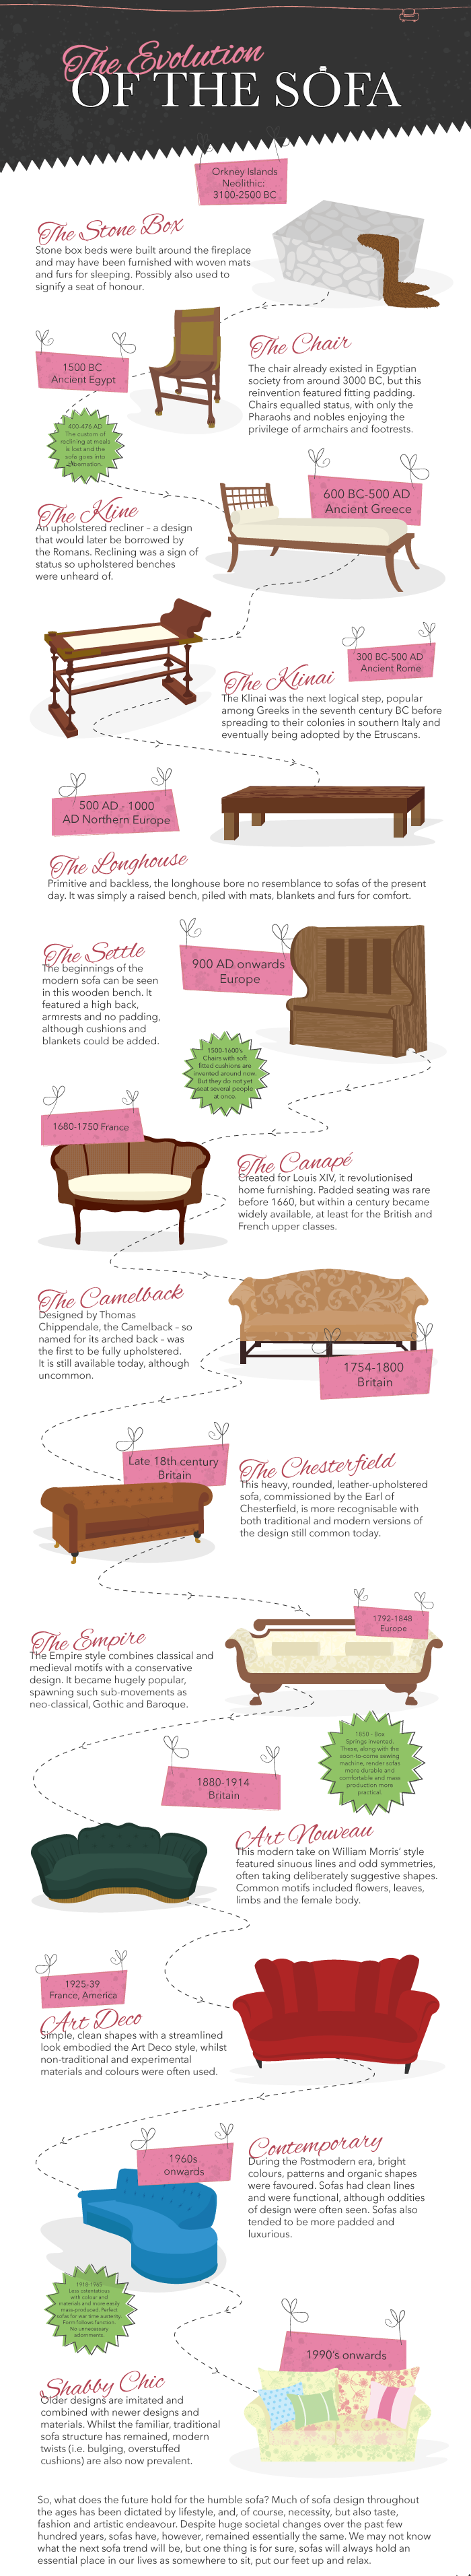 The Evolution of the Sofa by Sofa Workshop